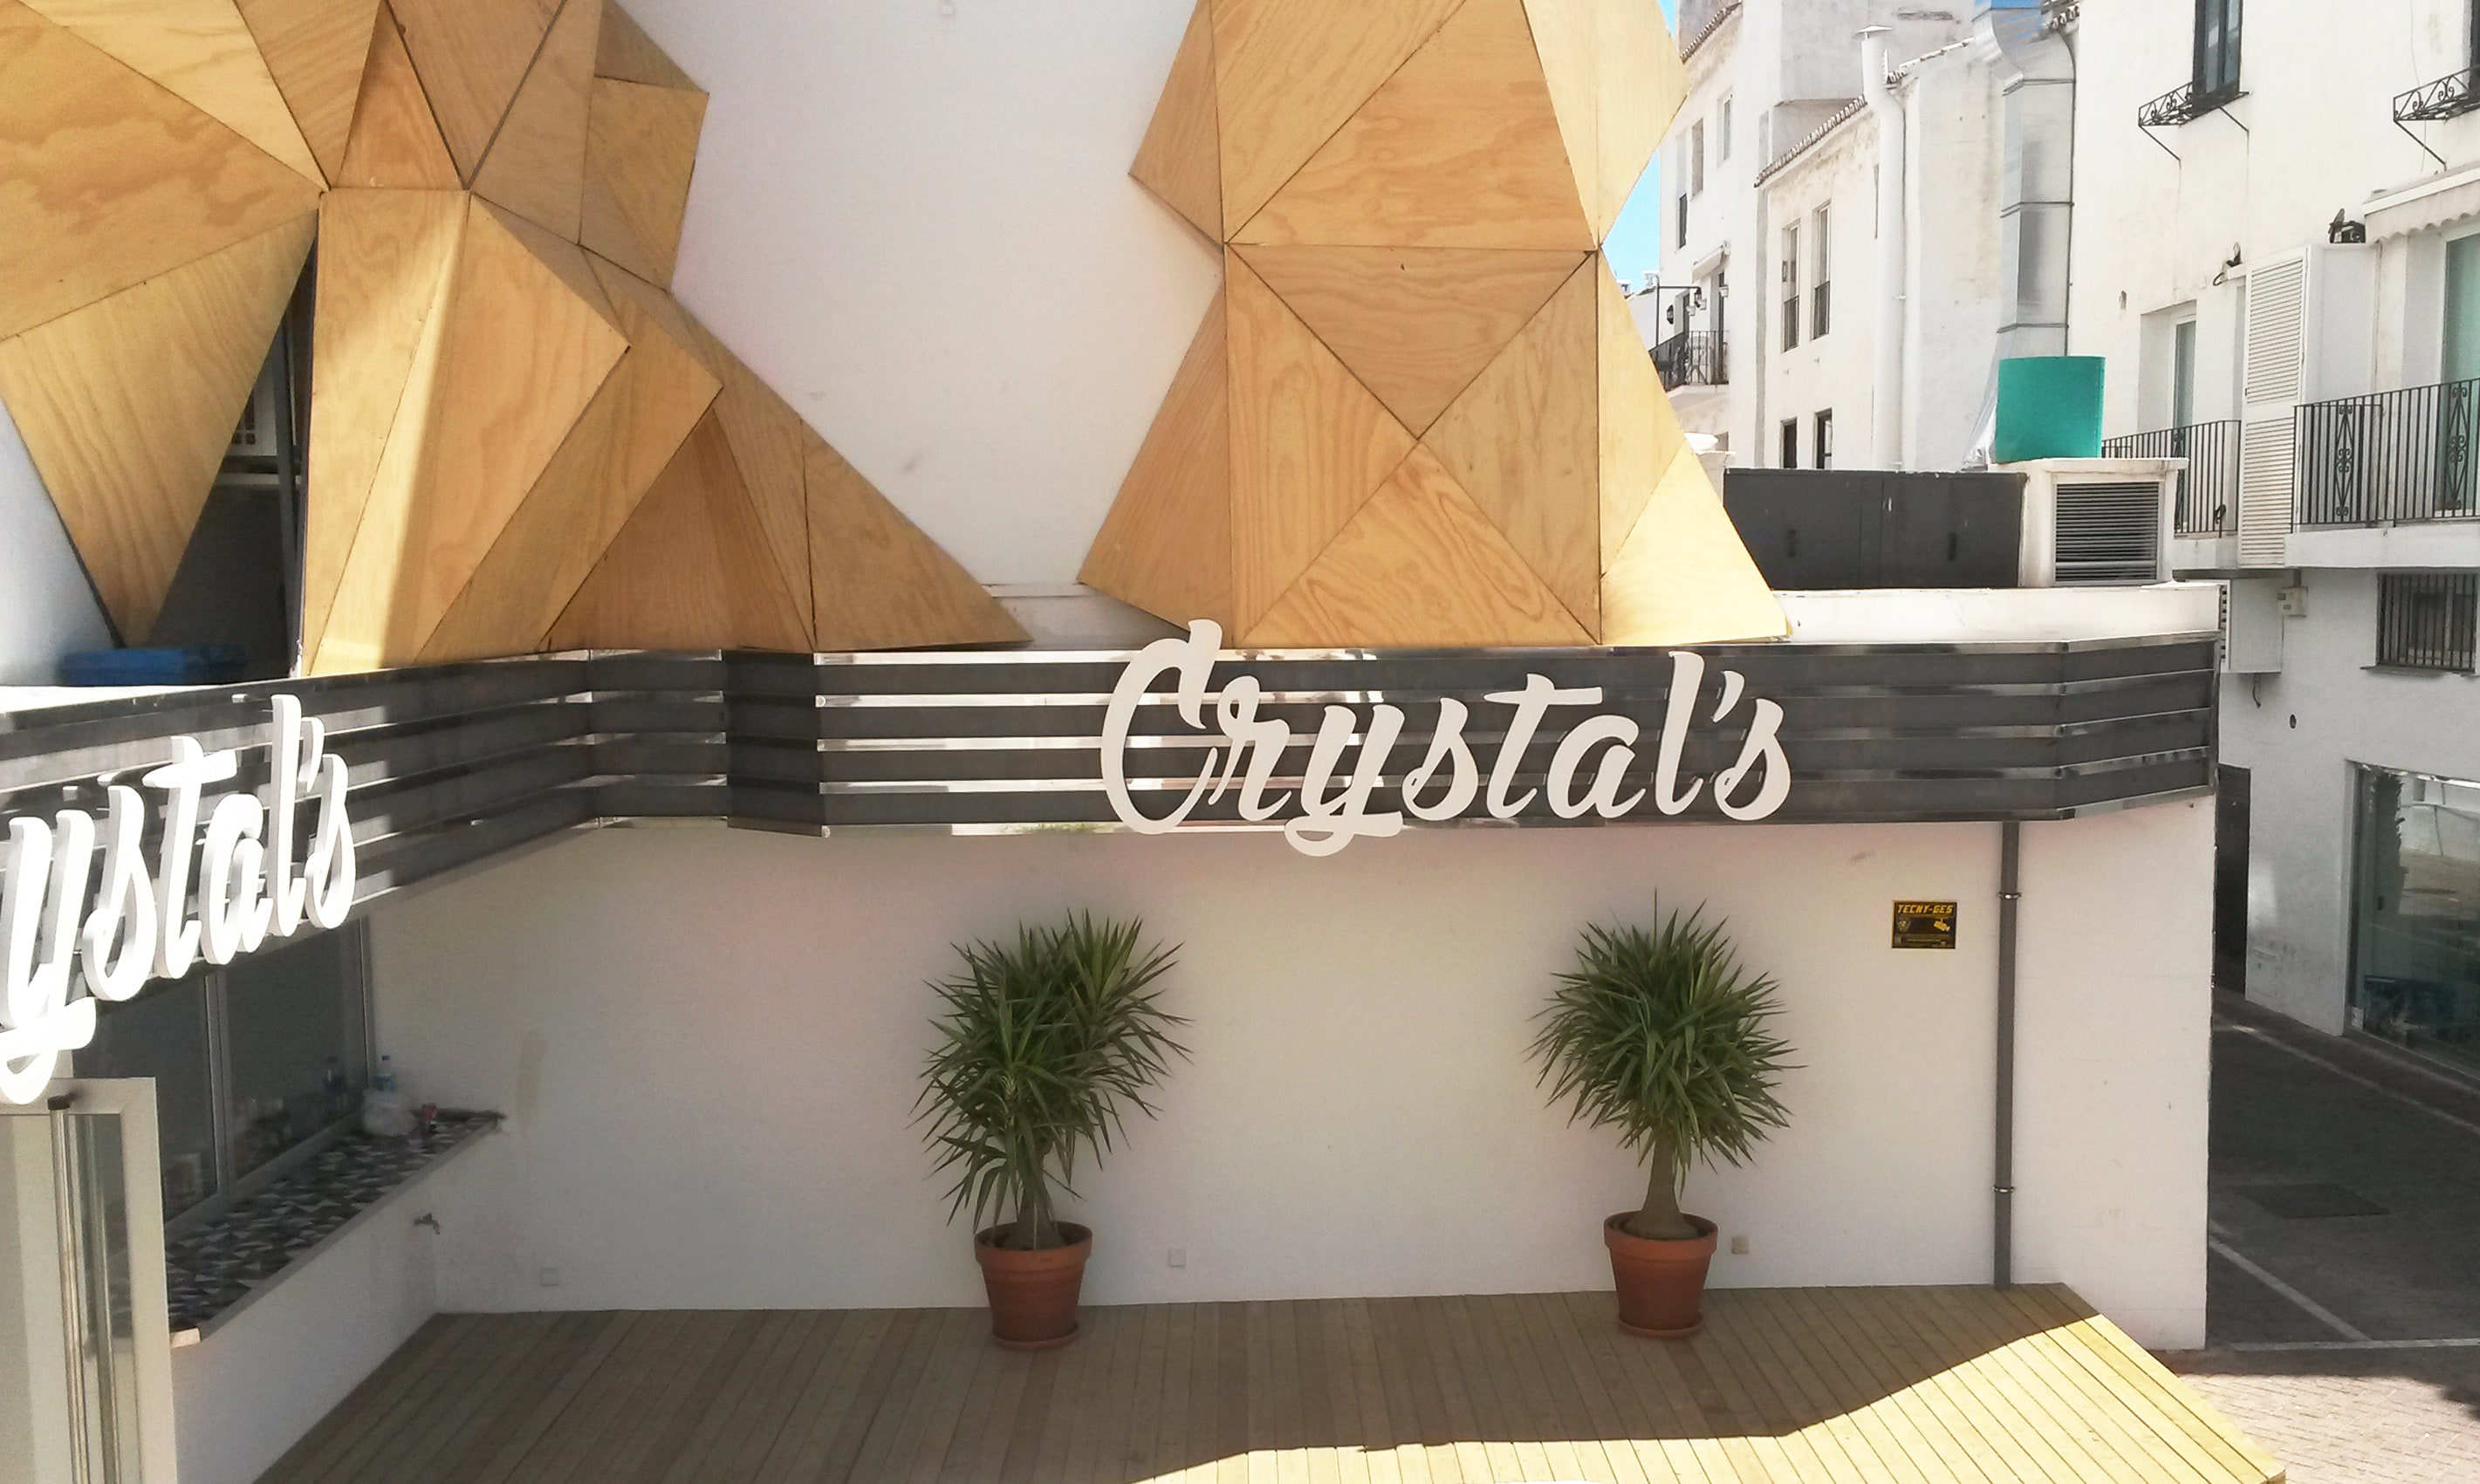 Design and manufacture of Crystal's signs in Puerto Banús